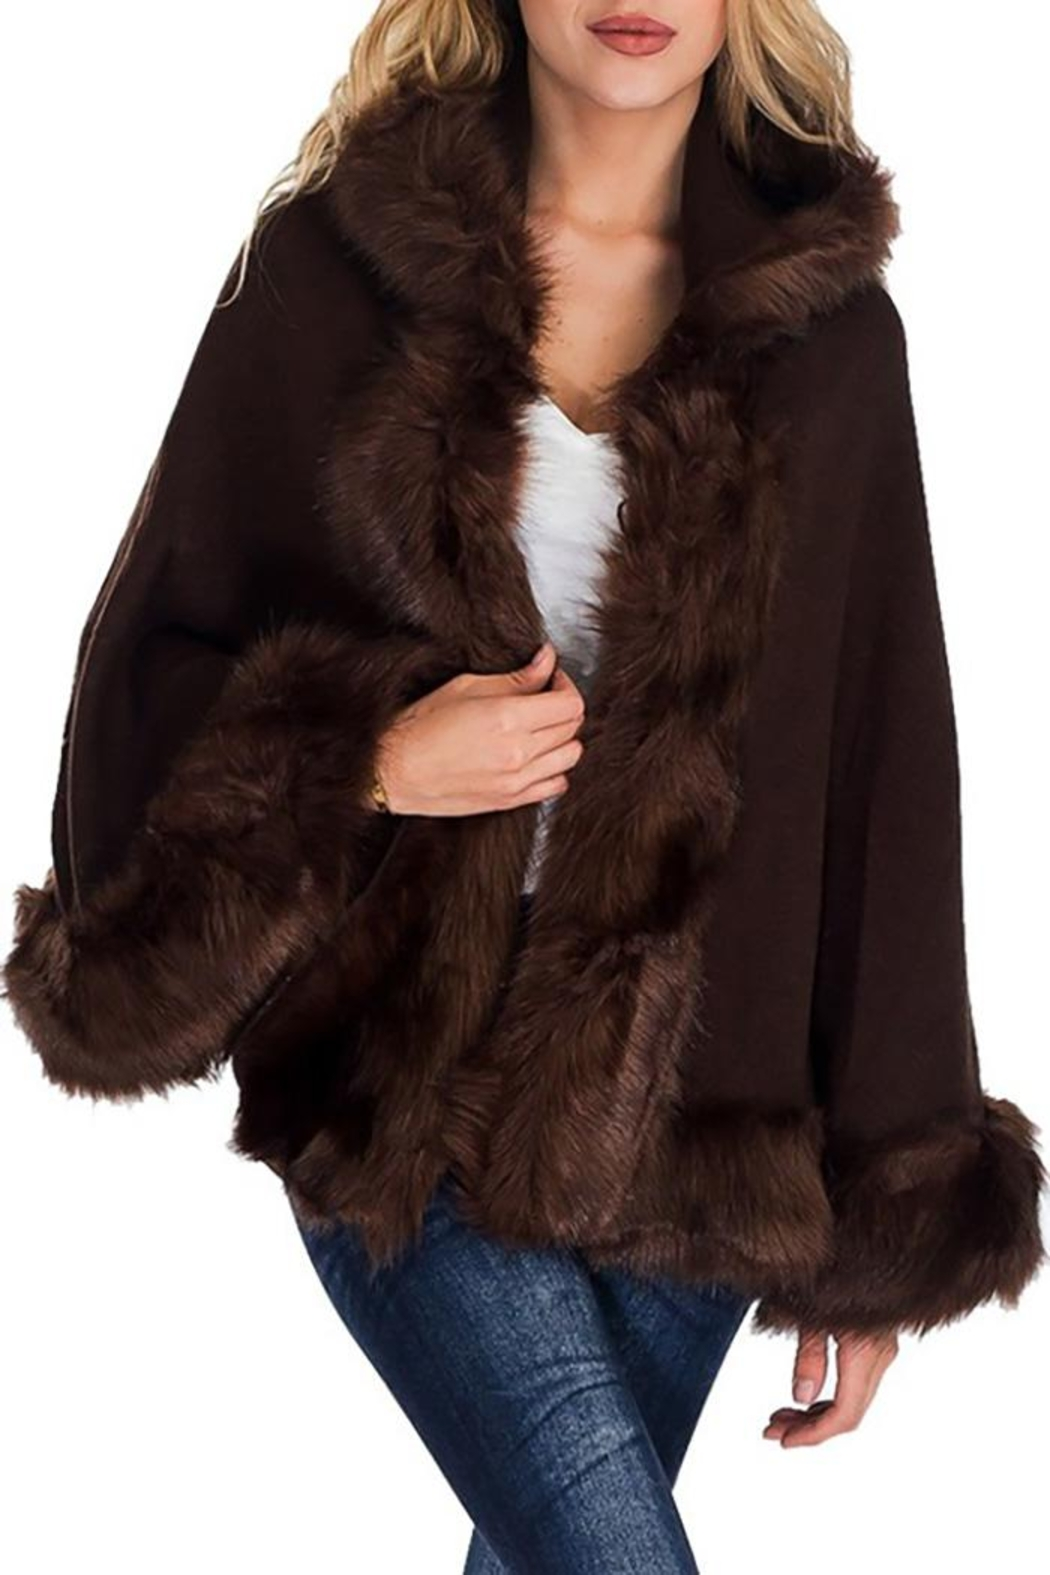 Nadya's Closet Solid Colored Trimmed Faux Fur Lined Open Silhouette Poncho - Front Cropped Image